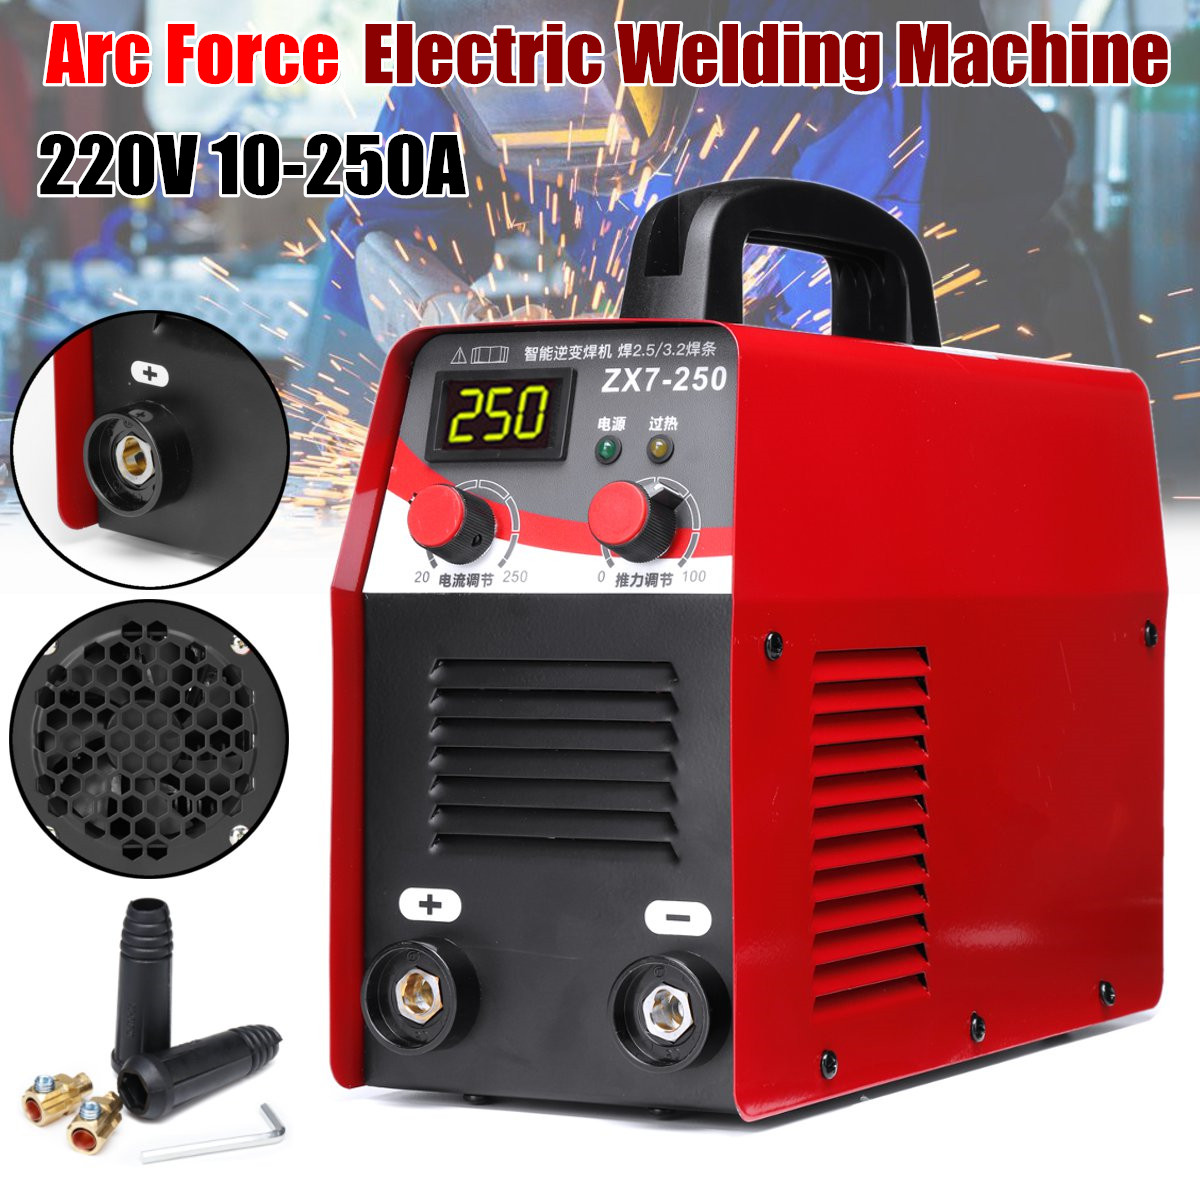 Tools : 110V-560V 9 5KW 11 5KW ZX7-250 ZX7-315 Arc Force Electric Welding Machine Mini Pro LCD Digital Display MMA IGBT Inverter Welders